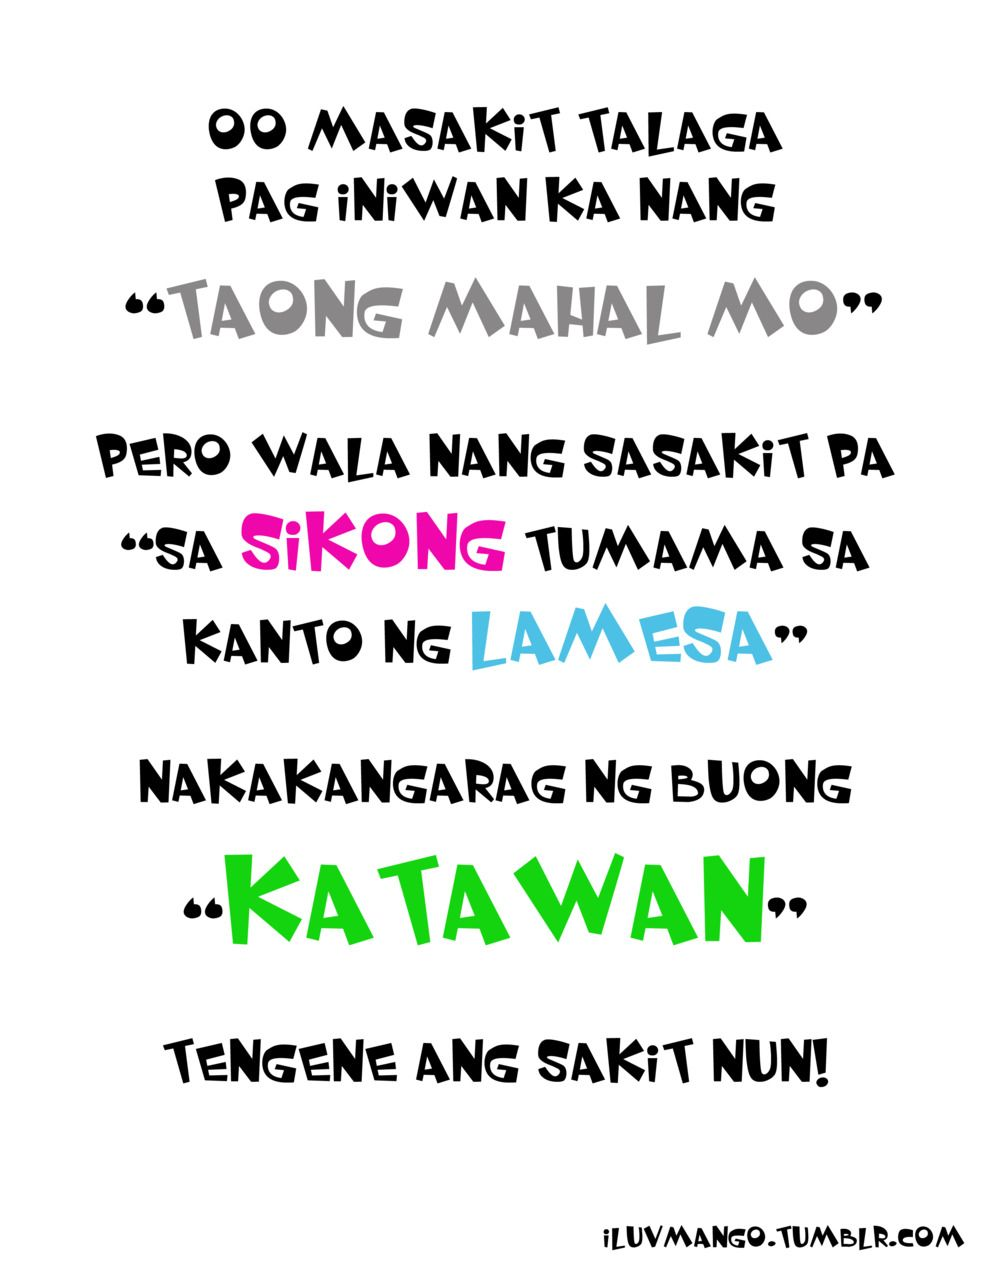 Tagalog Funny Love Quotes Tumblr 2012 Picture Quotes Tagalog Love Quotes Love Quotes For Her Tagalog Quotes